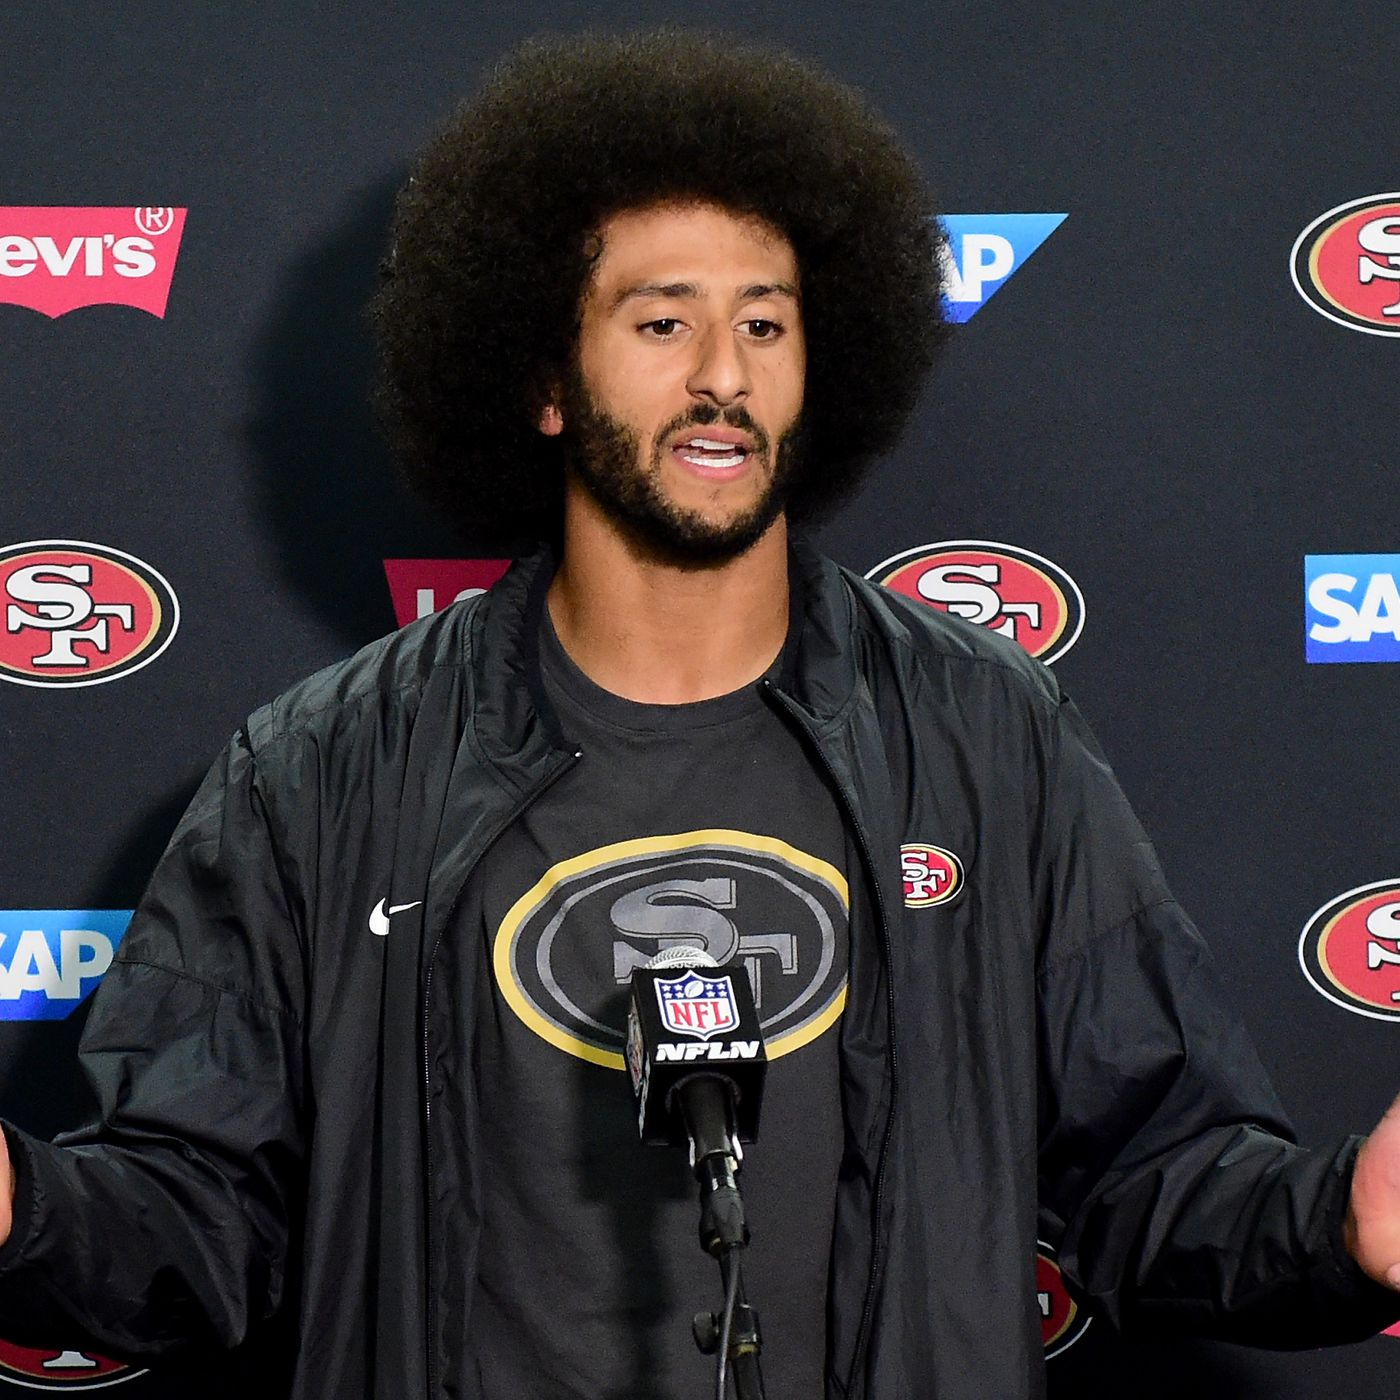 ef54b9089 A timeline of Colin Kaepernick s national anthem protest and the athletes  who joined him - SBNation.com